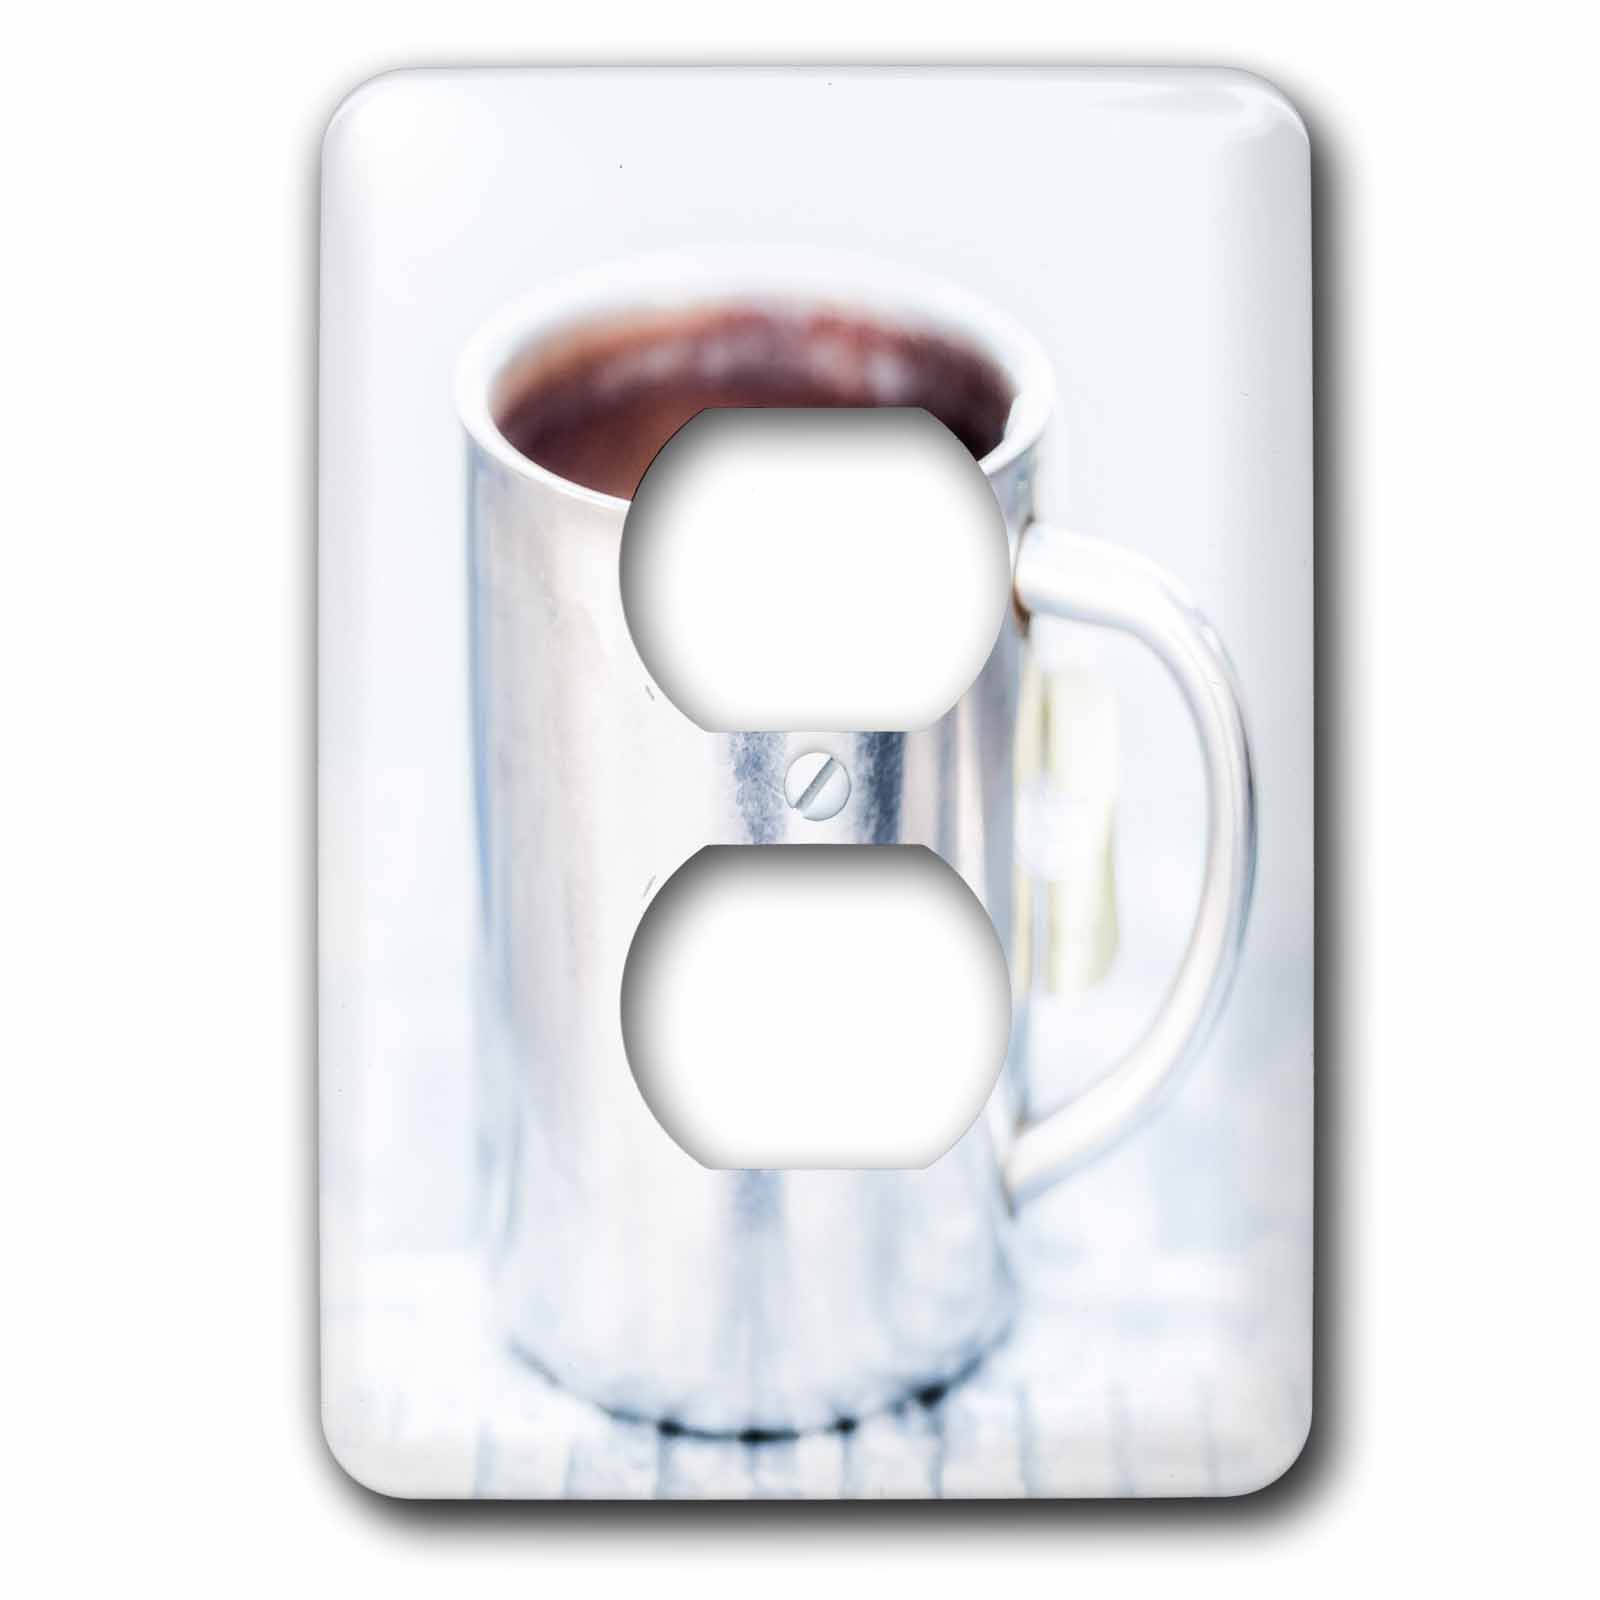 3dRose Alexis Photography - Objects - White aluminum coffee mug against the white background - Light Switch Covers - 2 plug outlet cover (lsp_272291_6)